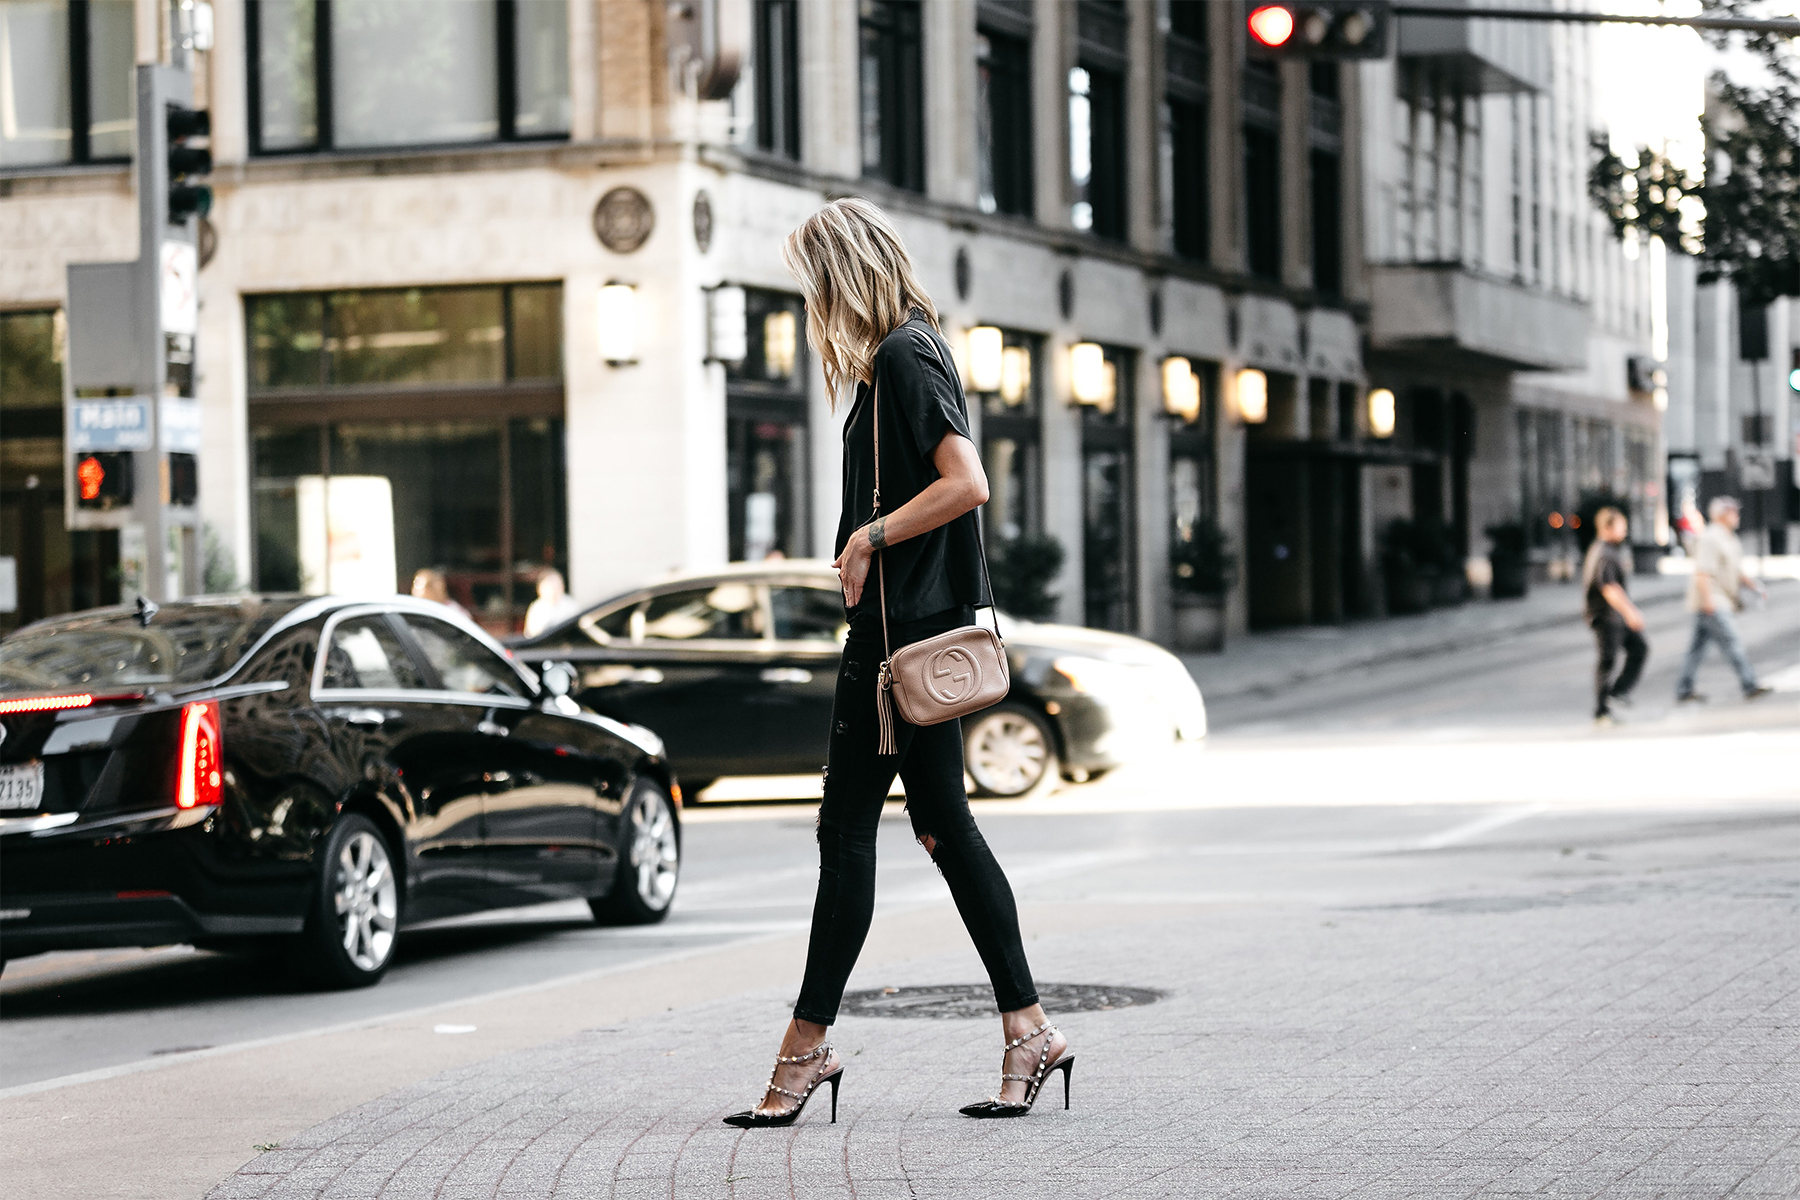 Blonde Woman Wearing Everlane Black Short Sleeve Button Up Shirt Zara Black Ripped Skinny Jeans Outfit Valentino Rockstud Pumps Gucci Soho Handbag Fashion Jackson Dallas Blogger Fashion Blogger